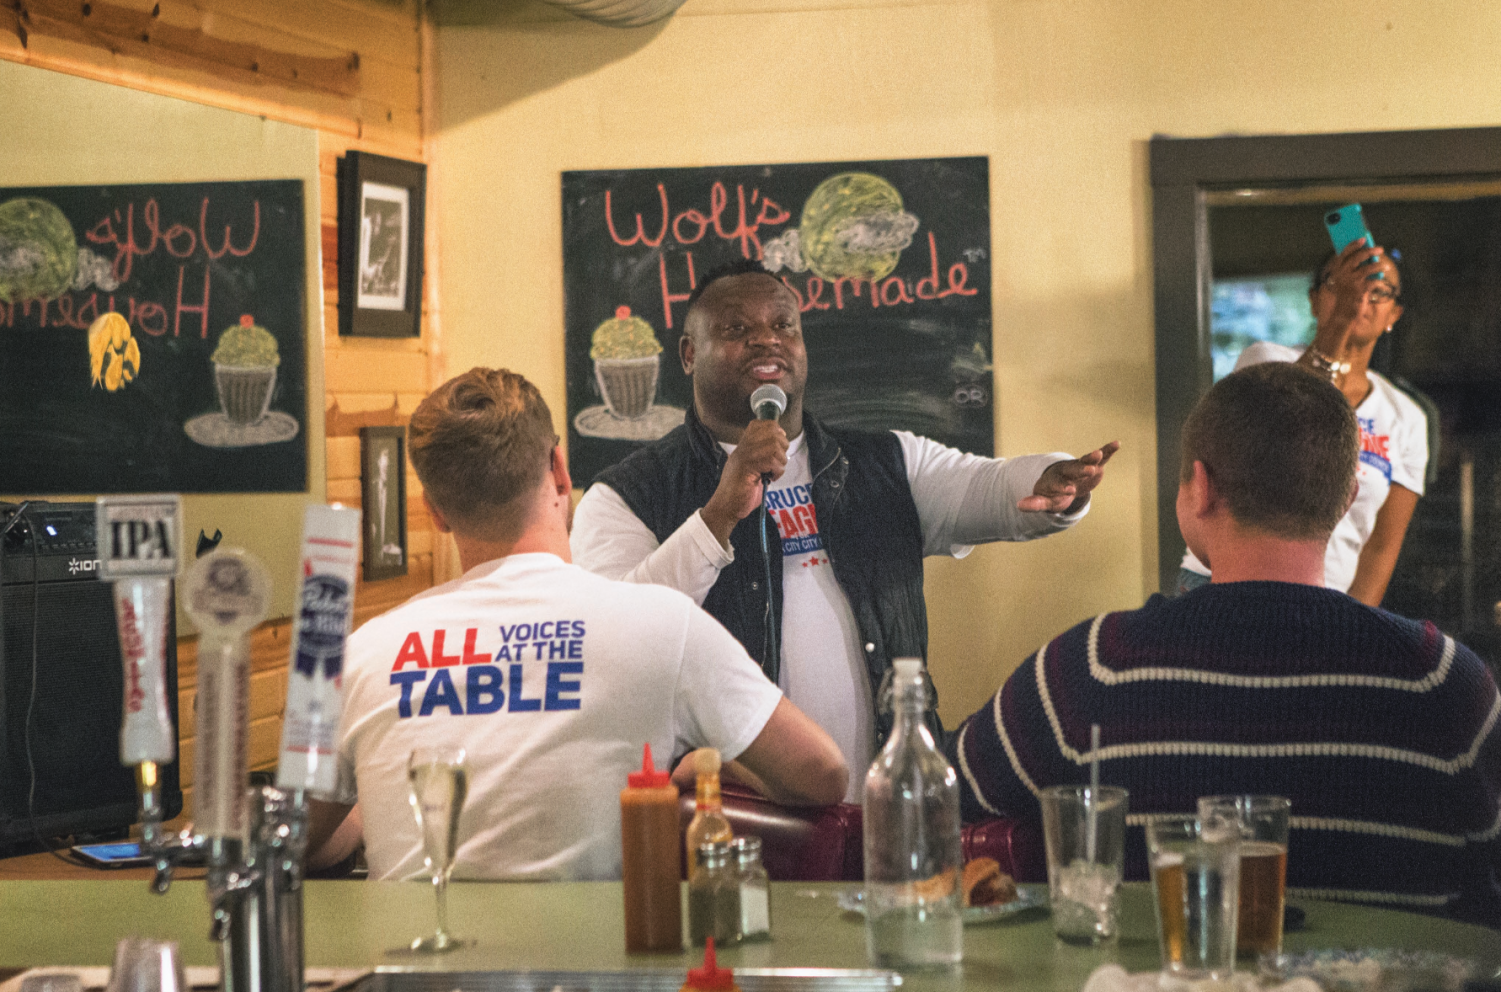 City Councilor Bruce Teague speaks to supporters at Billy's High Hat Diner at Billy's High Hat Diner on Tuesday, Oct. 2, 2018. Teague defeated Ann Freerks with 54.3 percent of the vote in a special election for Iowa City City Council's vacant seat.